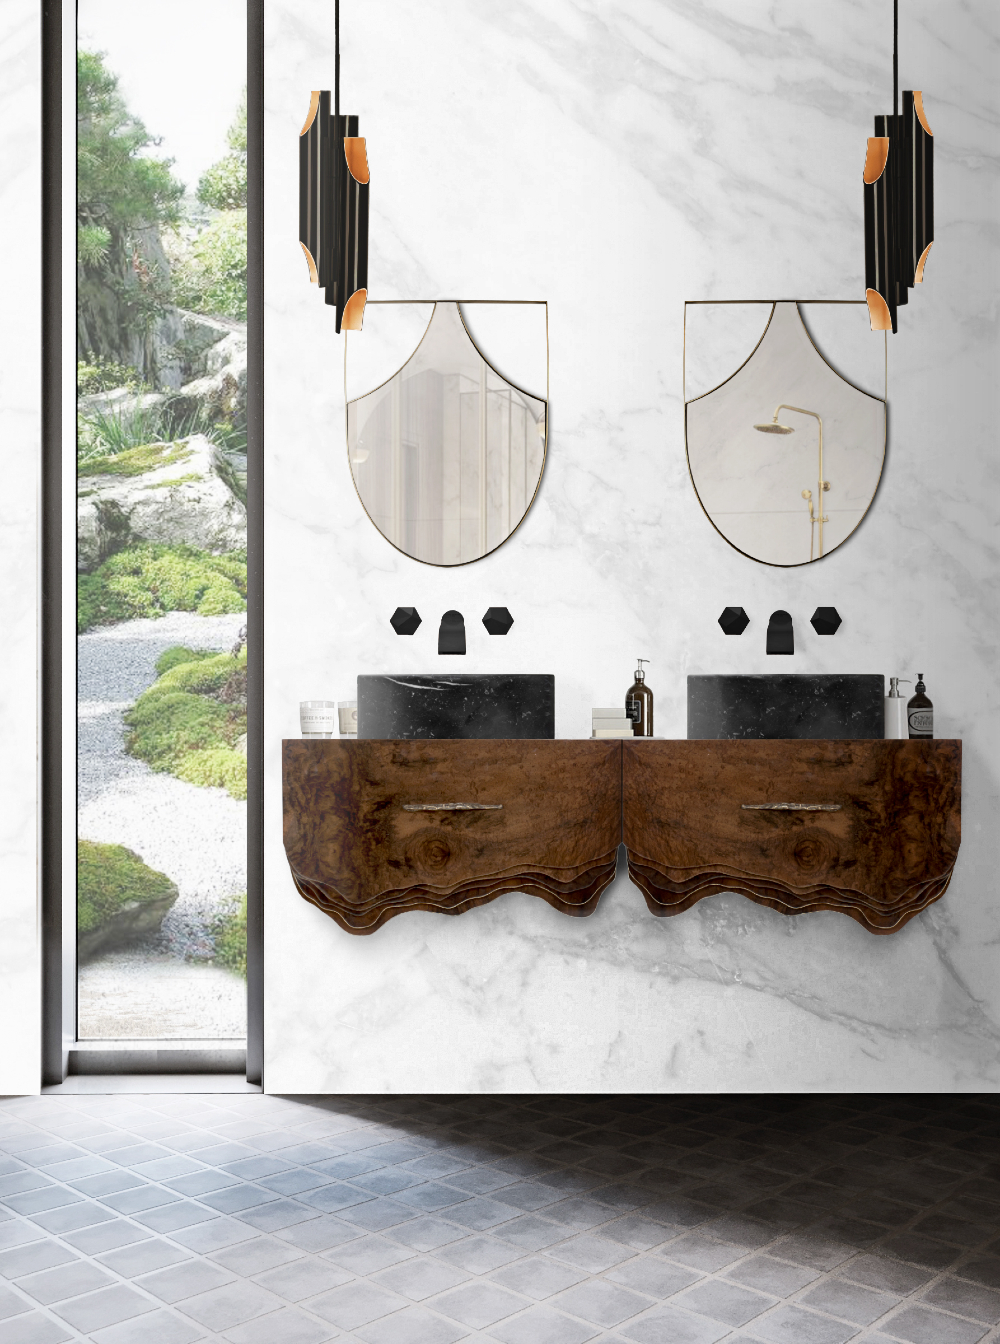 Bathroom Decor Trends 2021 To Watch Out For (2) bathroom decor trends Bathroom Decor Trends 2021 To Watch Out For Bathroom Decor Trends 2021 To Watch Out For 2